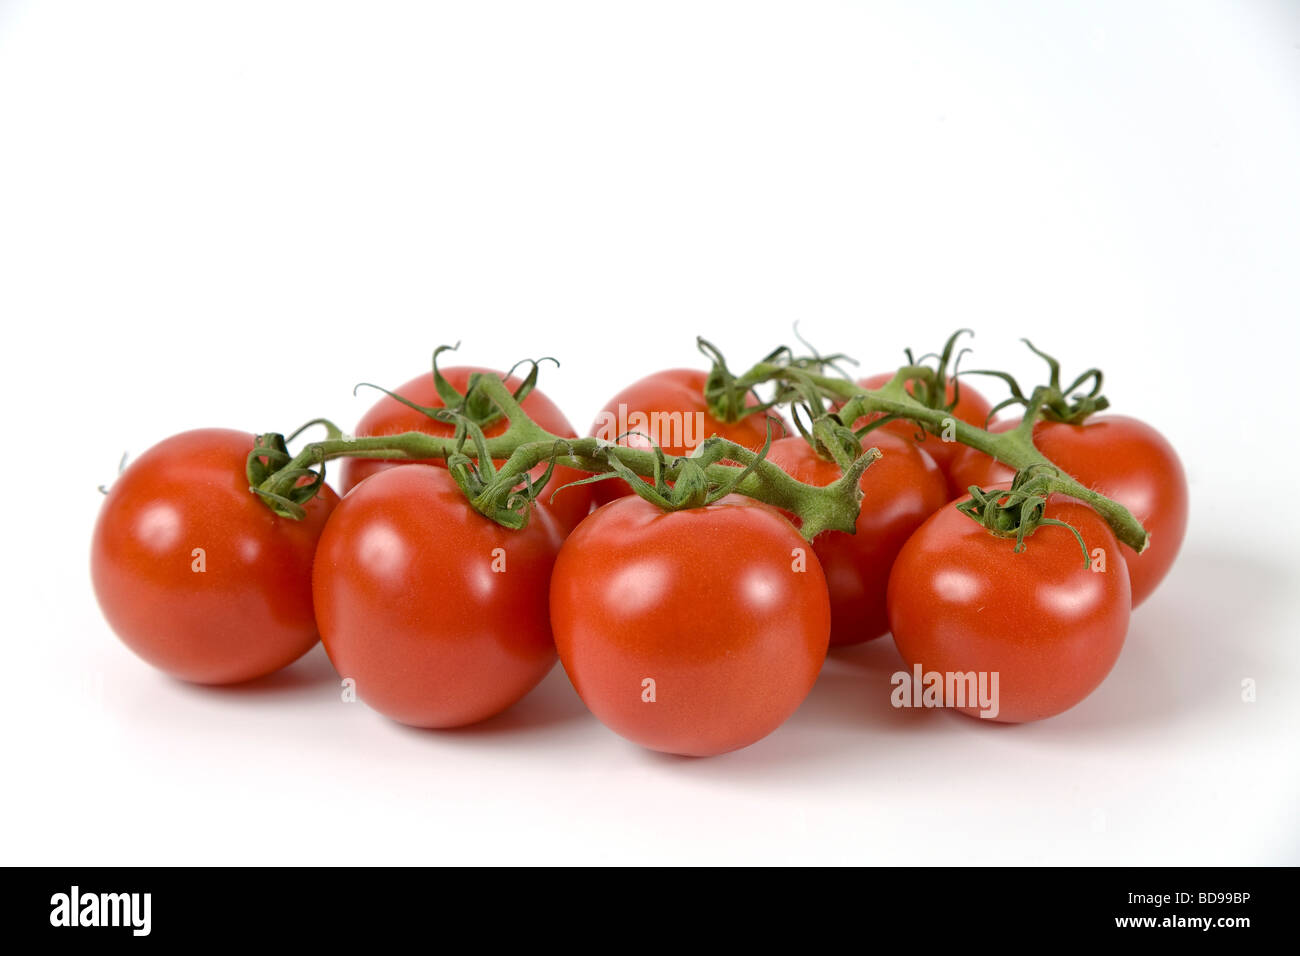 Organically grown tomatoes. - Stock Image